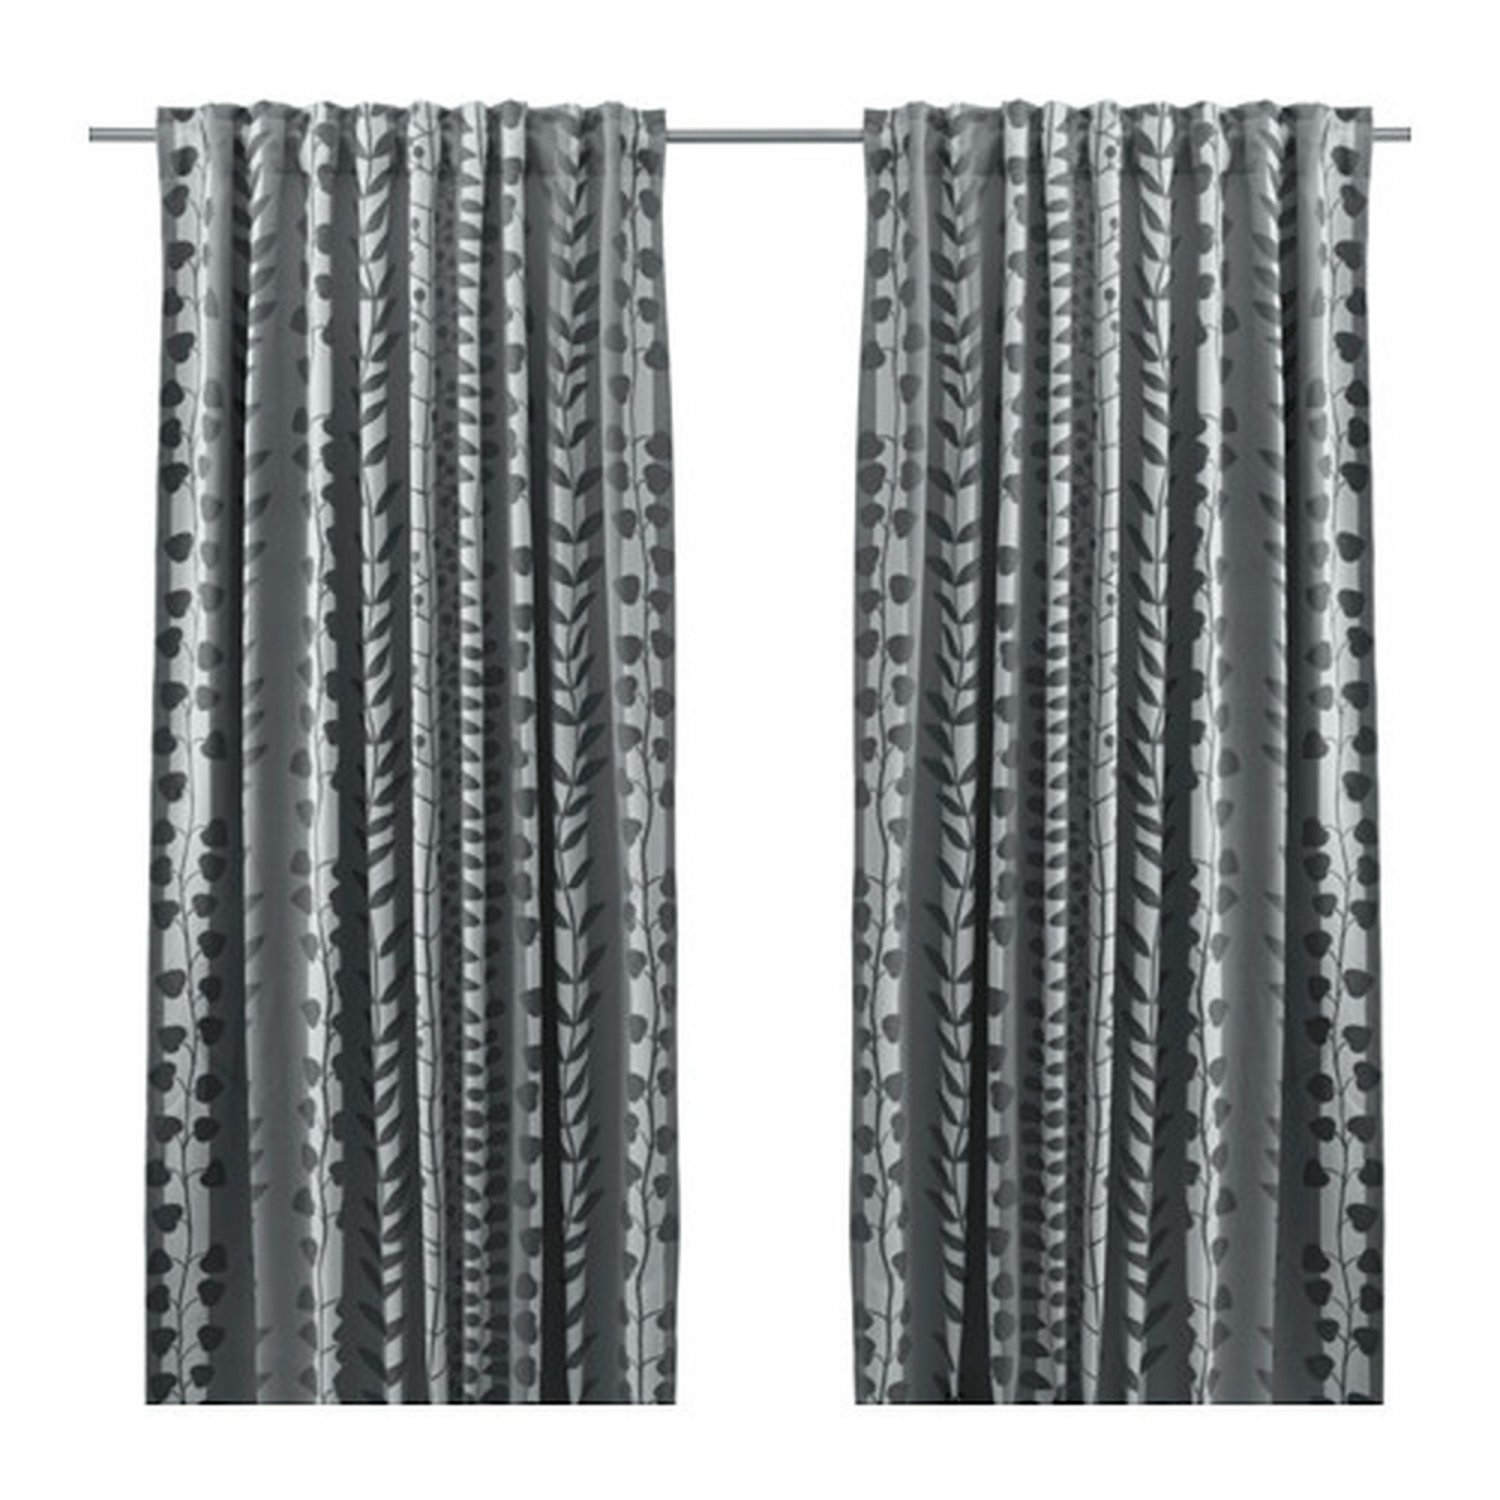 Ikea Gunni Curtains Drapes 2 Panels Gray Leaf Stripe Blackout